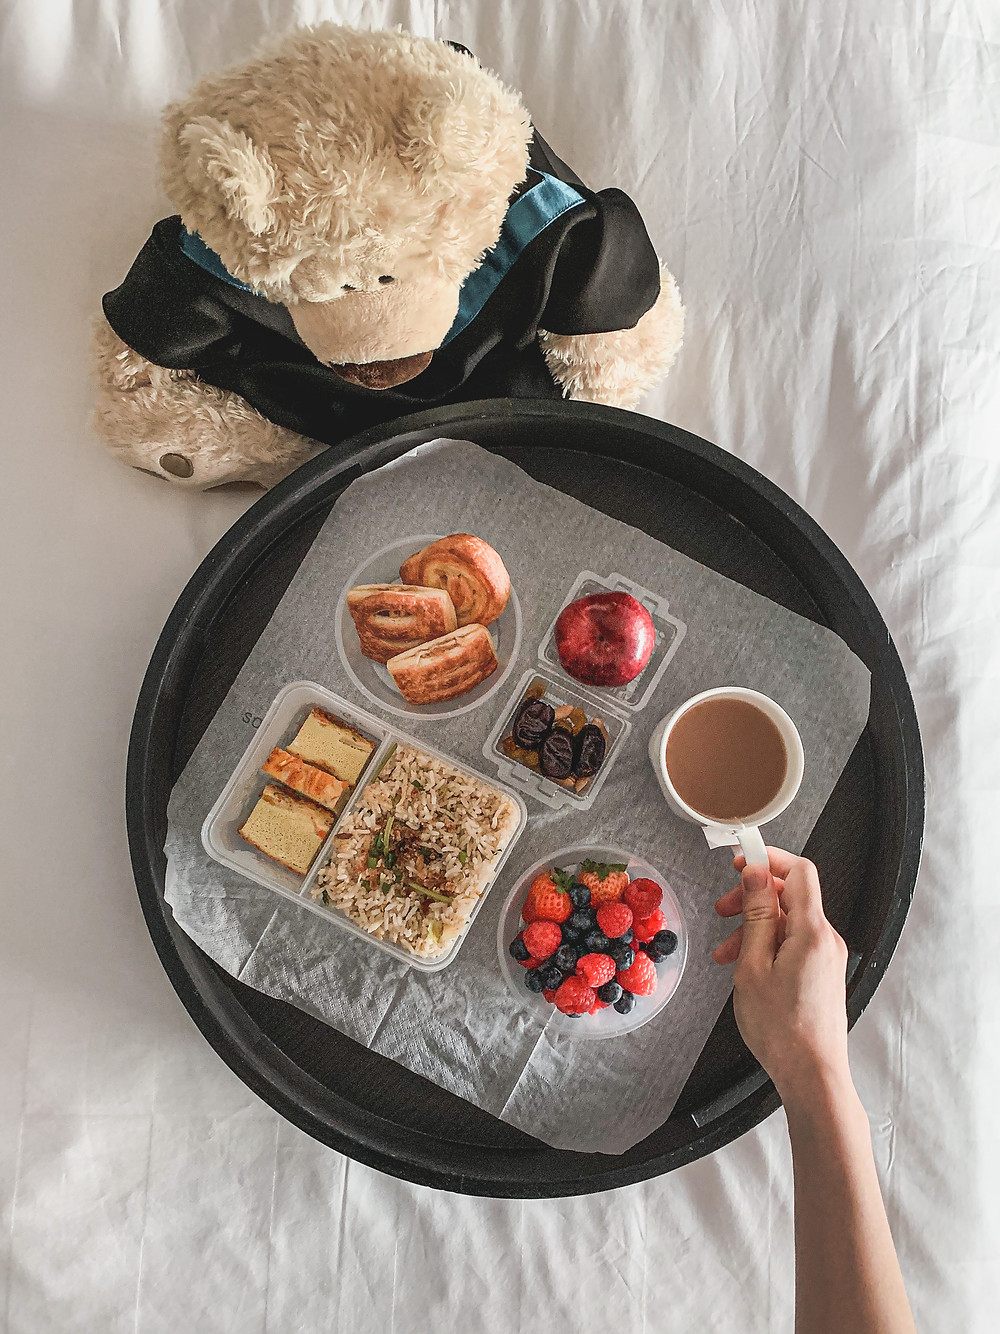 Rollingbear Travels blog/ Gund Philbin teddy bear, flat lay of quarantine breakfast spread in bed, Malaysian fried rice, mini pastries, mixed berries